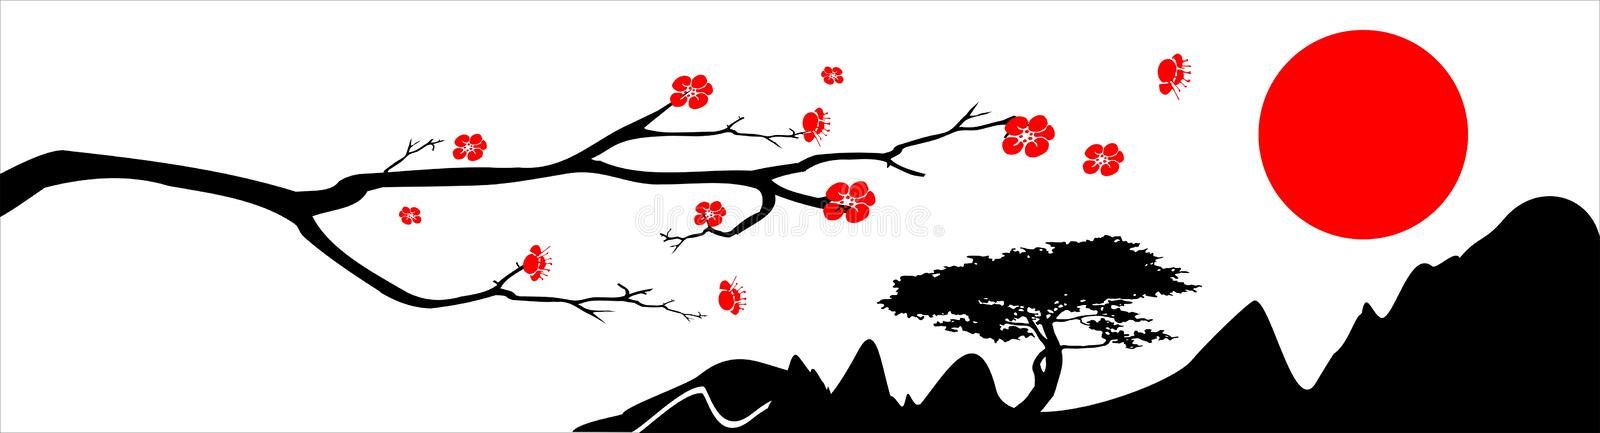 Japan background royalty free illustration